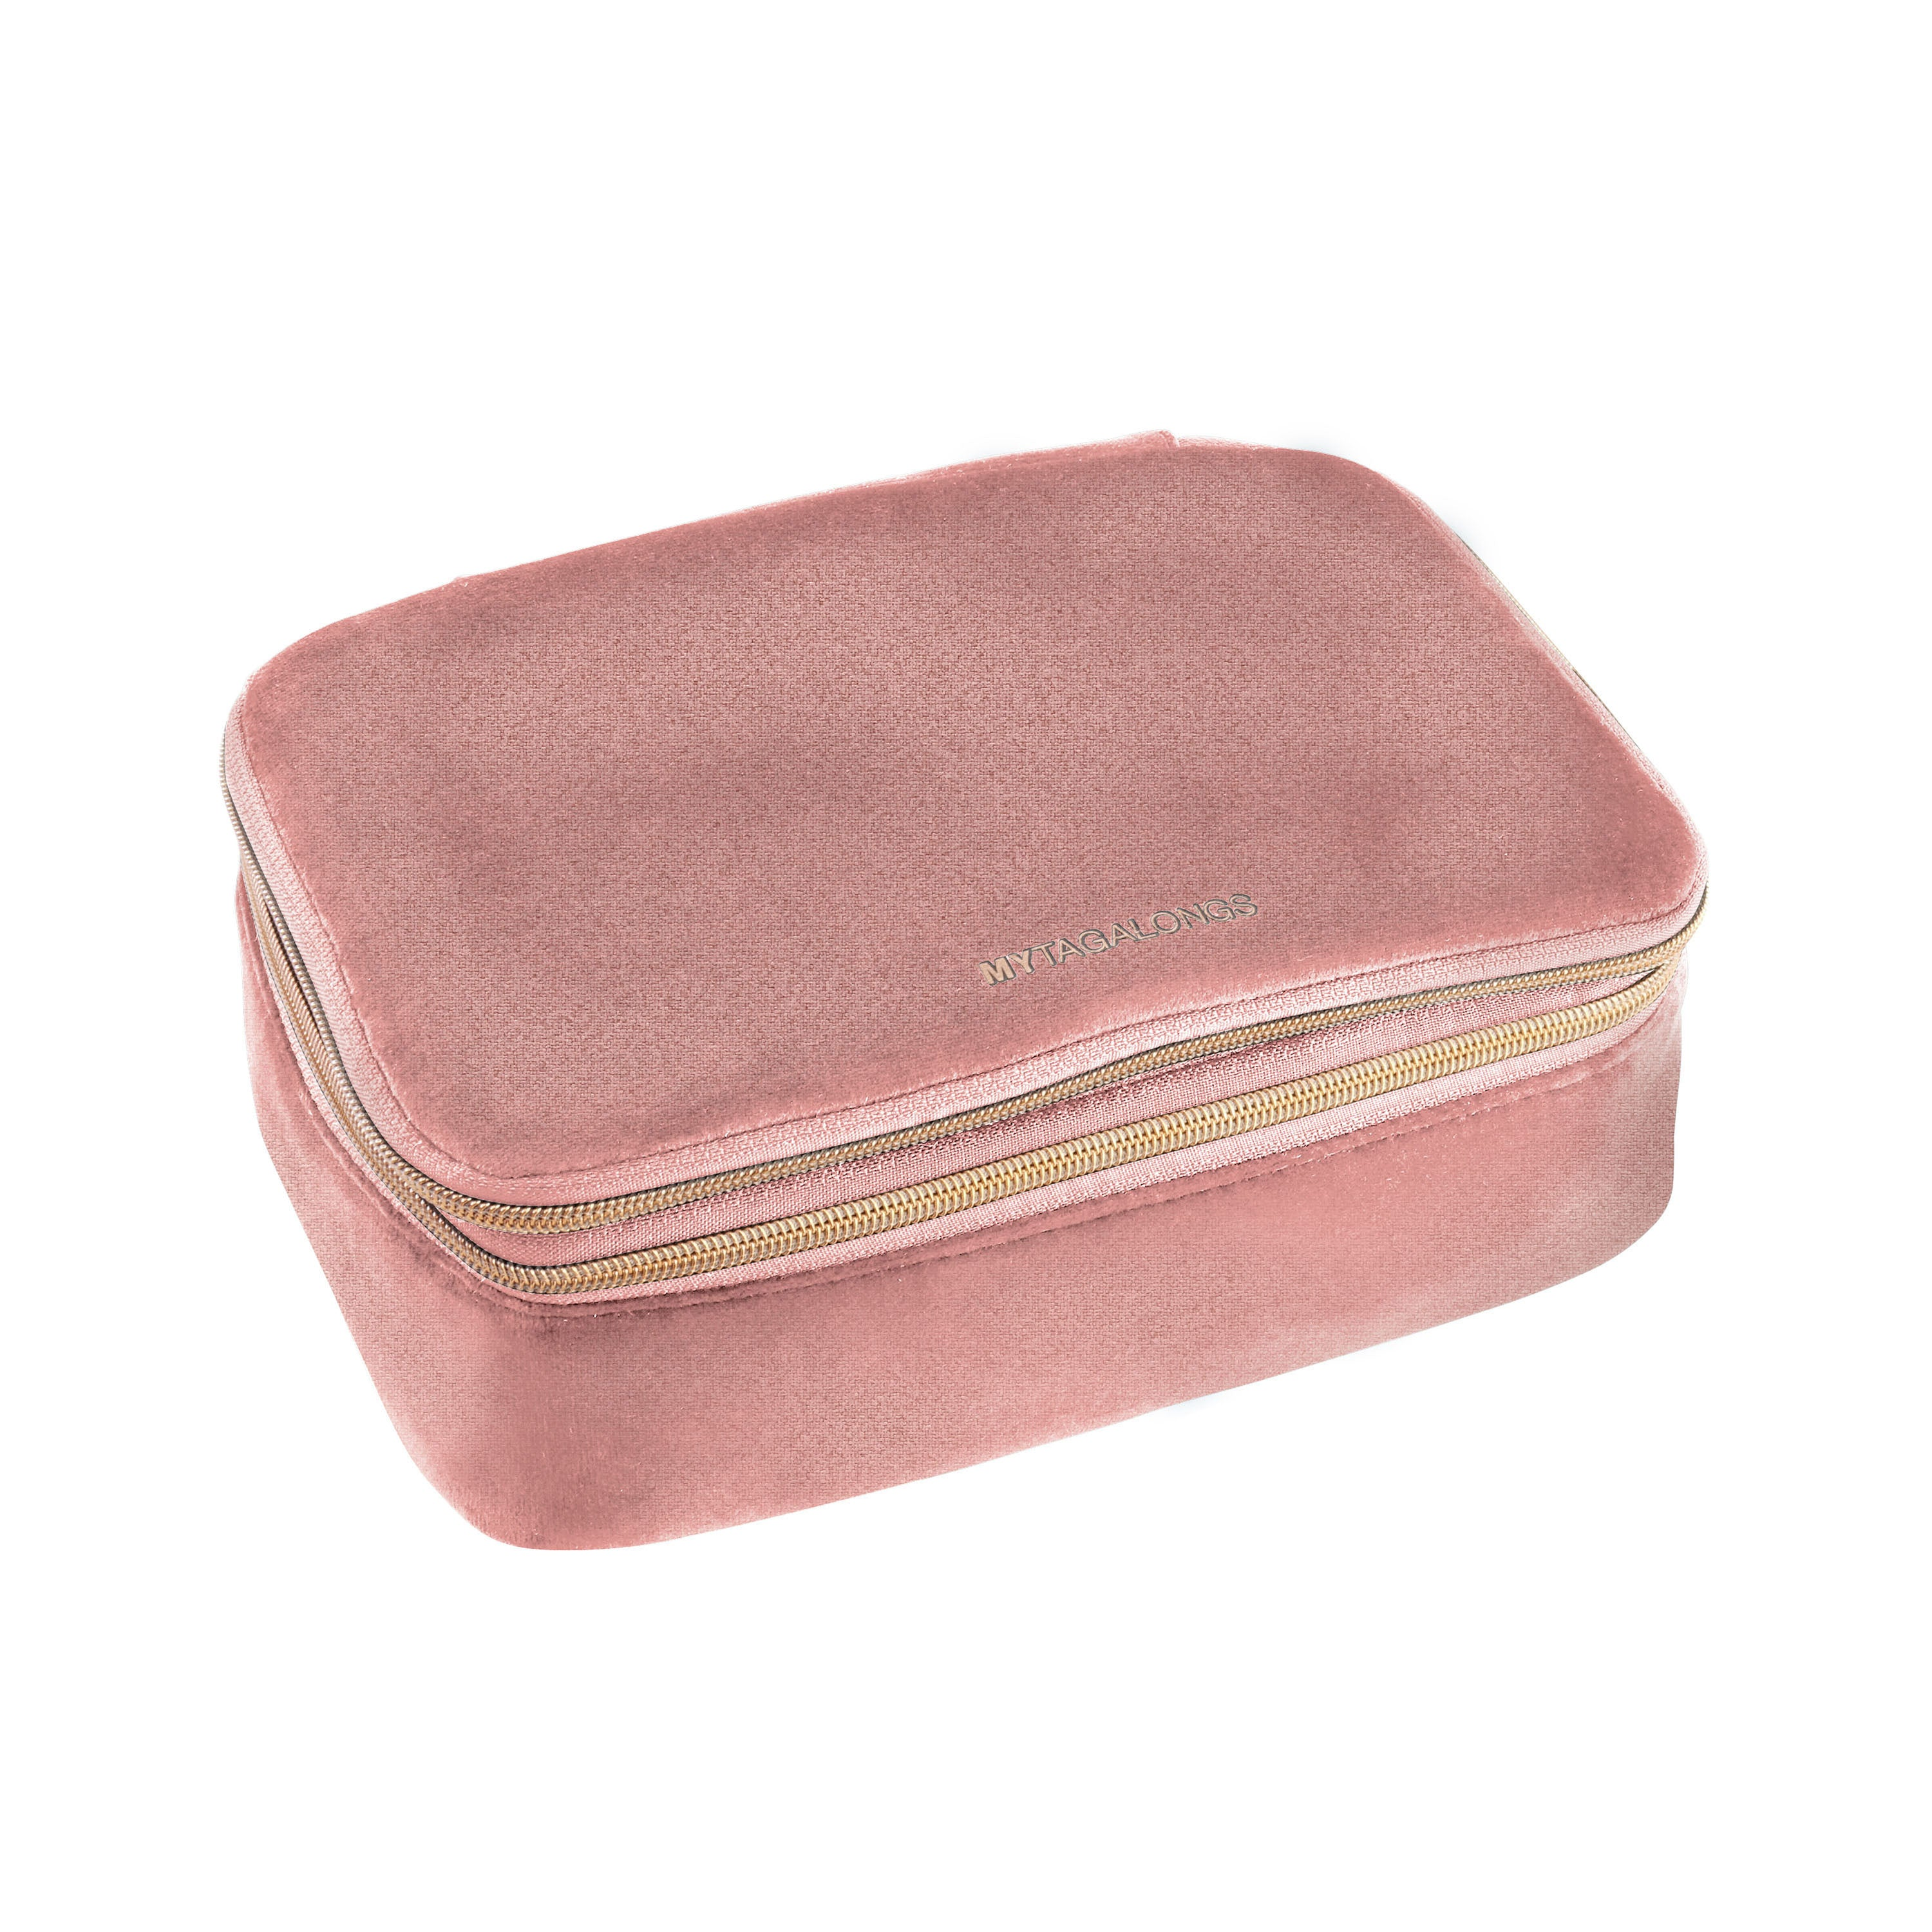 DELUXE BEAUTY ORGANIZER - VIXEN ROSE (velour finish)